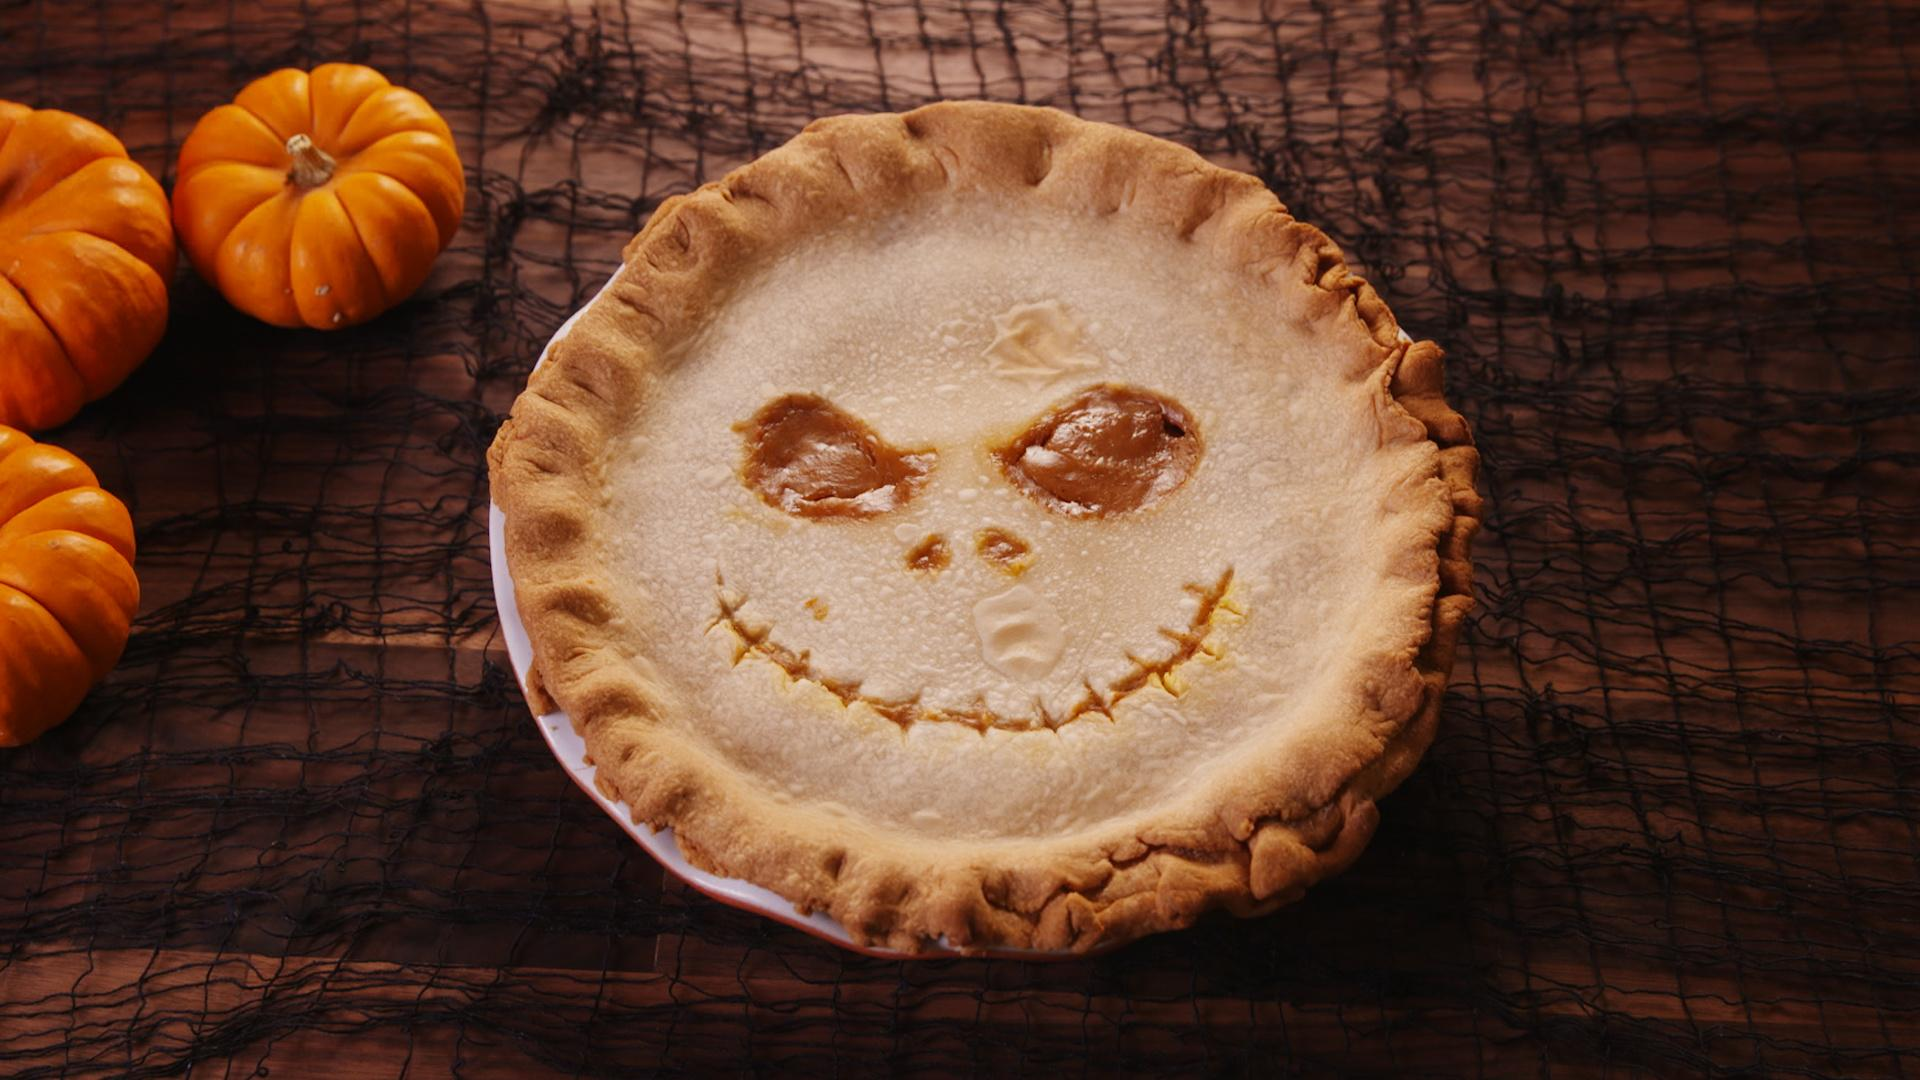 This Jack Skellington Inspired Pumpkin Pie Will Haunt Your Nightmares